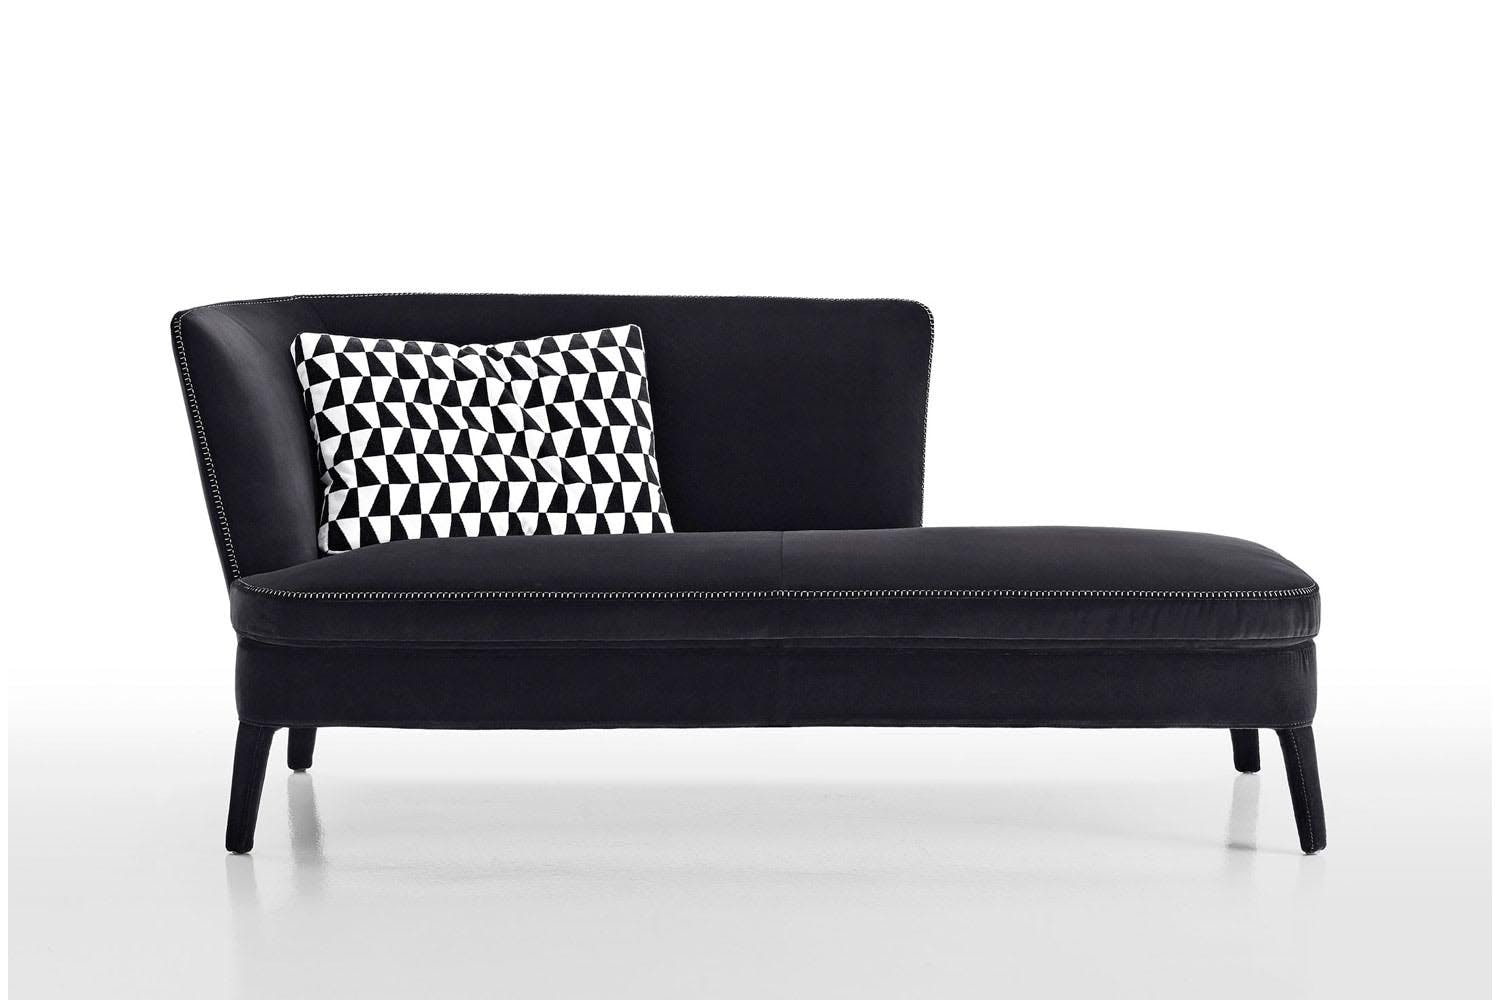 Febo 15 Chaise Longue By Antonio Citterio For Maxalto